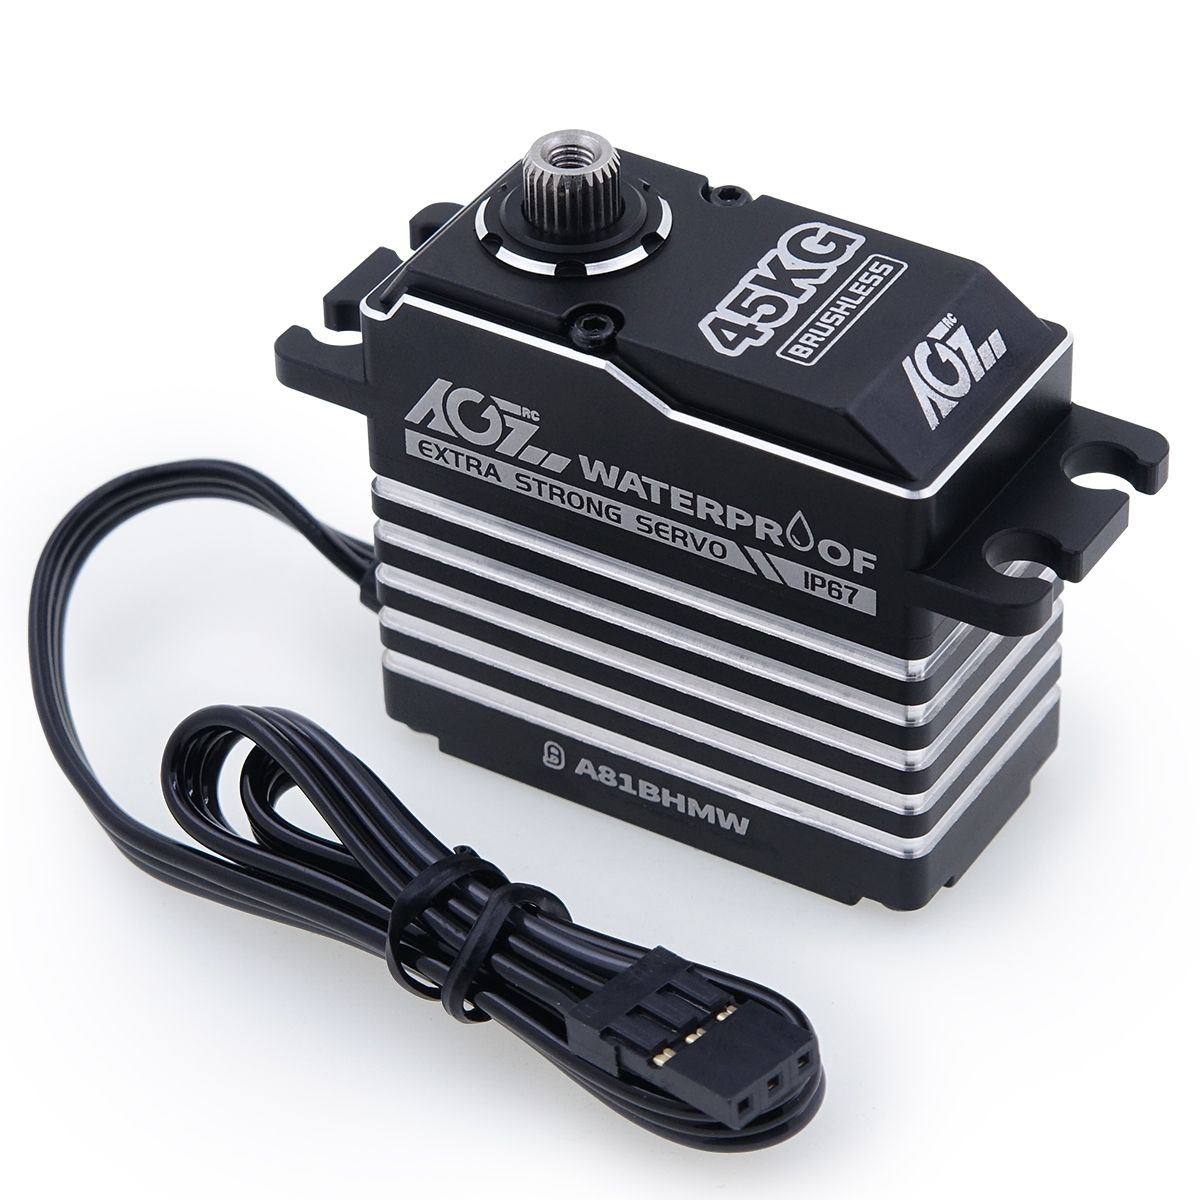 AGFRC A81BHMW 45KG Super Torque Waterproof 360 Degree Continuous RotationProgrammable Digital Brushless Standard Servo For 1/8 Monster Truck Buggy Car Boat Aircraft